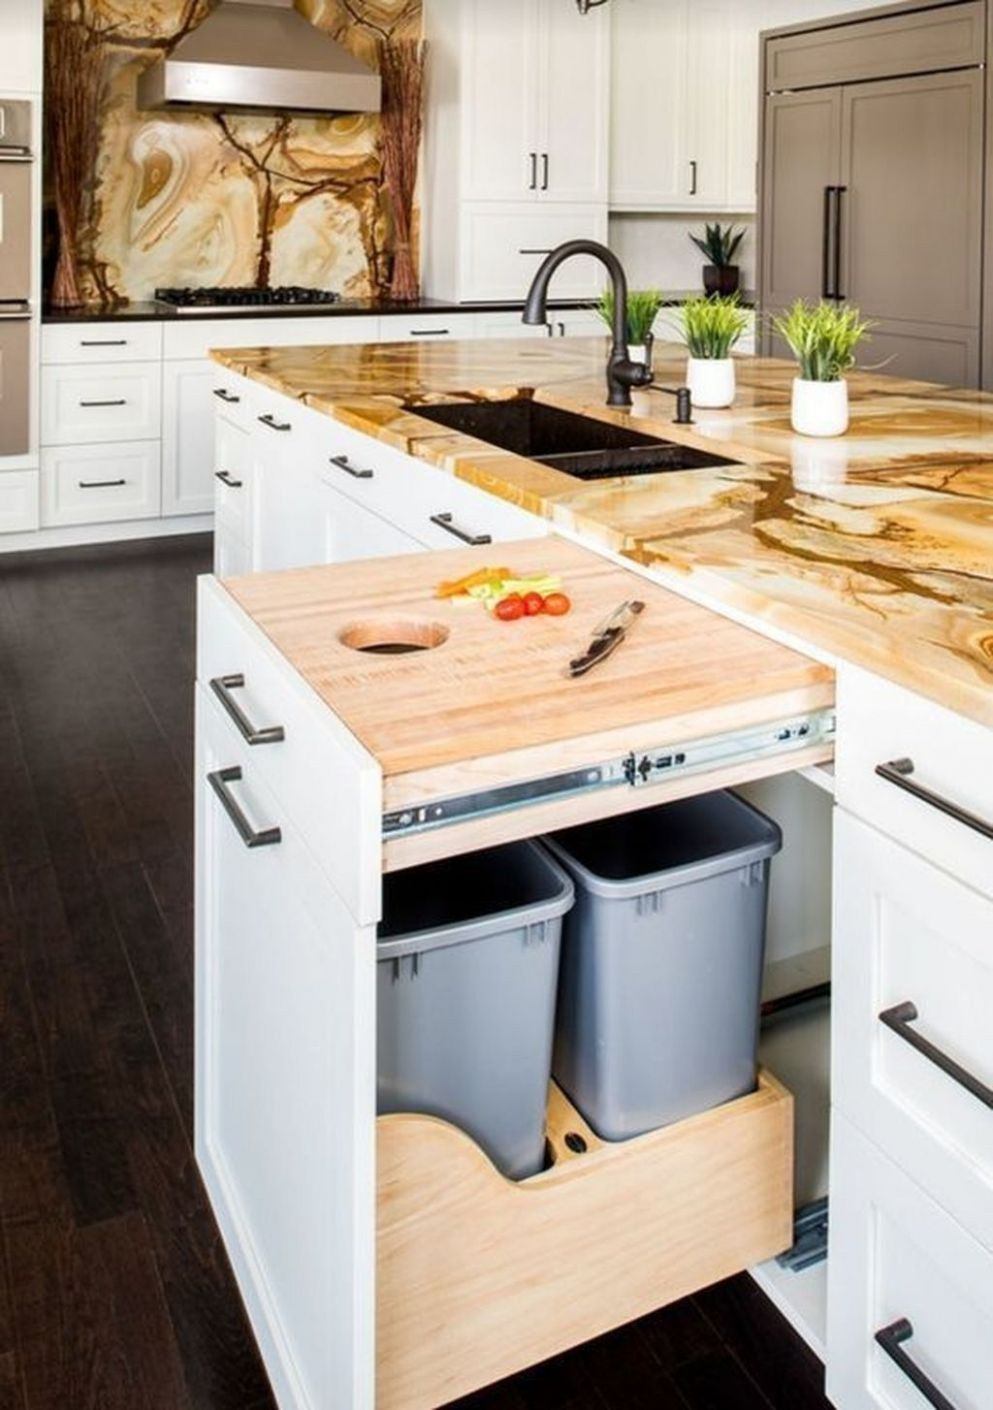 10+ Luxury Kitchen Storage Ideas To Save Your Space | Kitchen ..